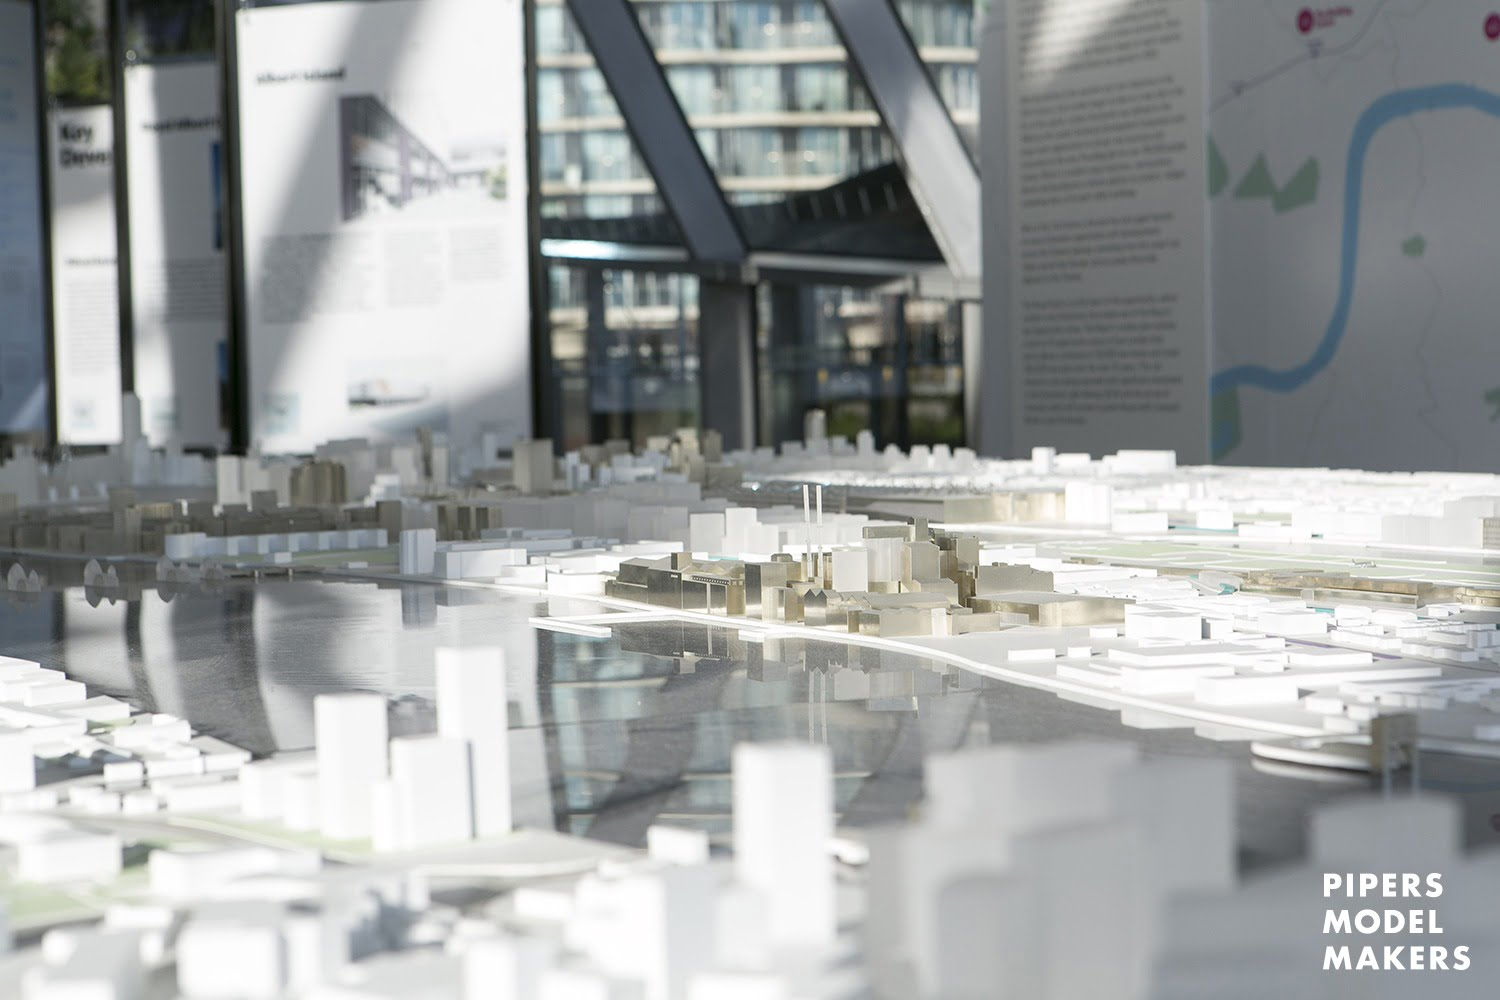 http://Royal%20Docks%20Greater%20London%20Authority%20Architectural%20Model